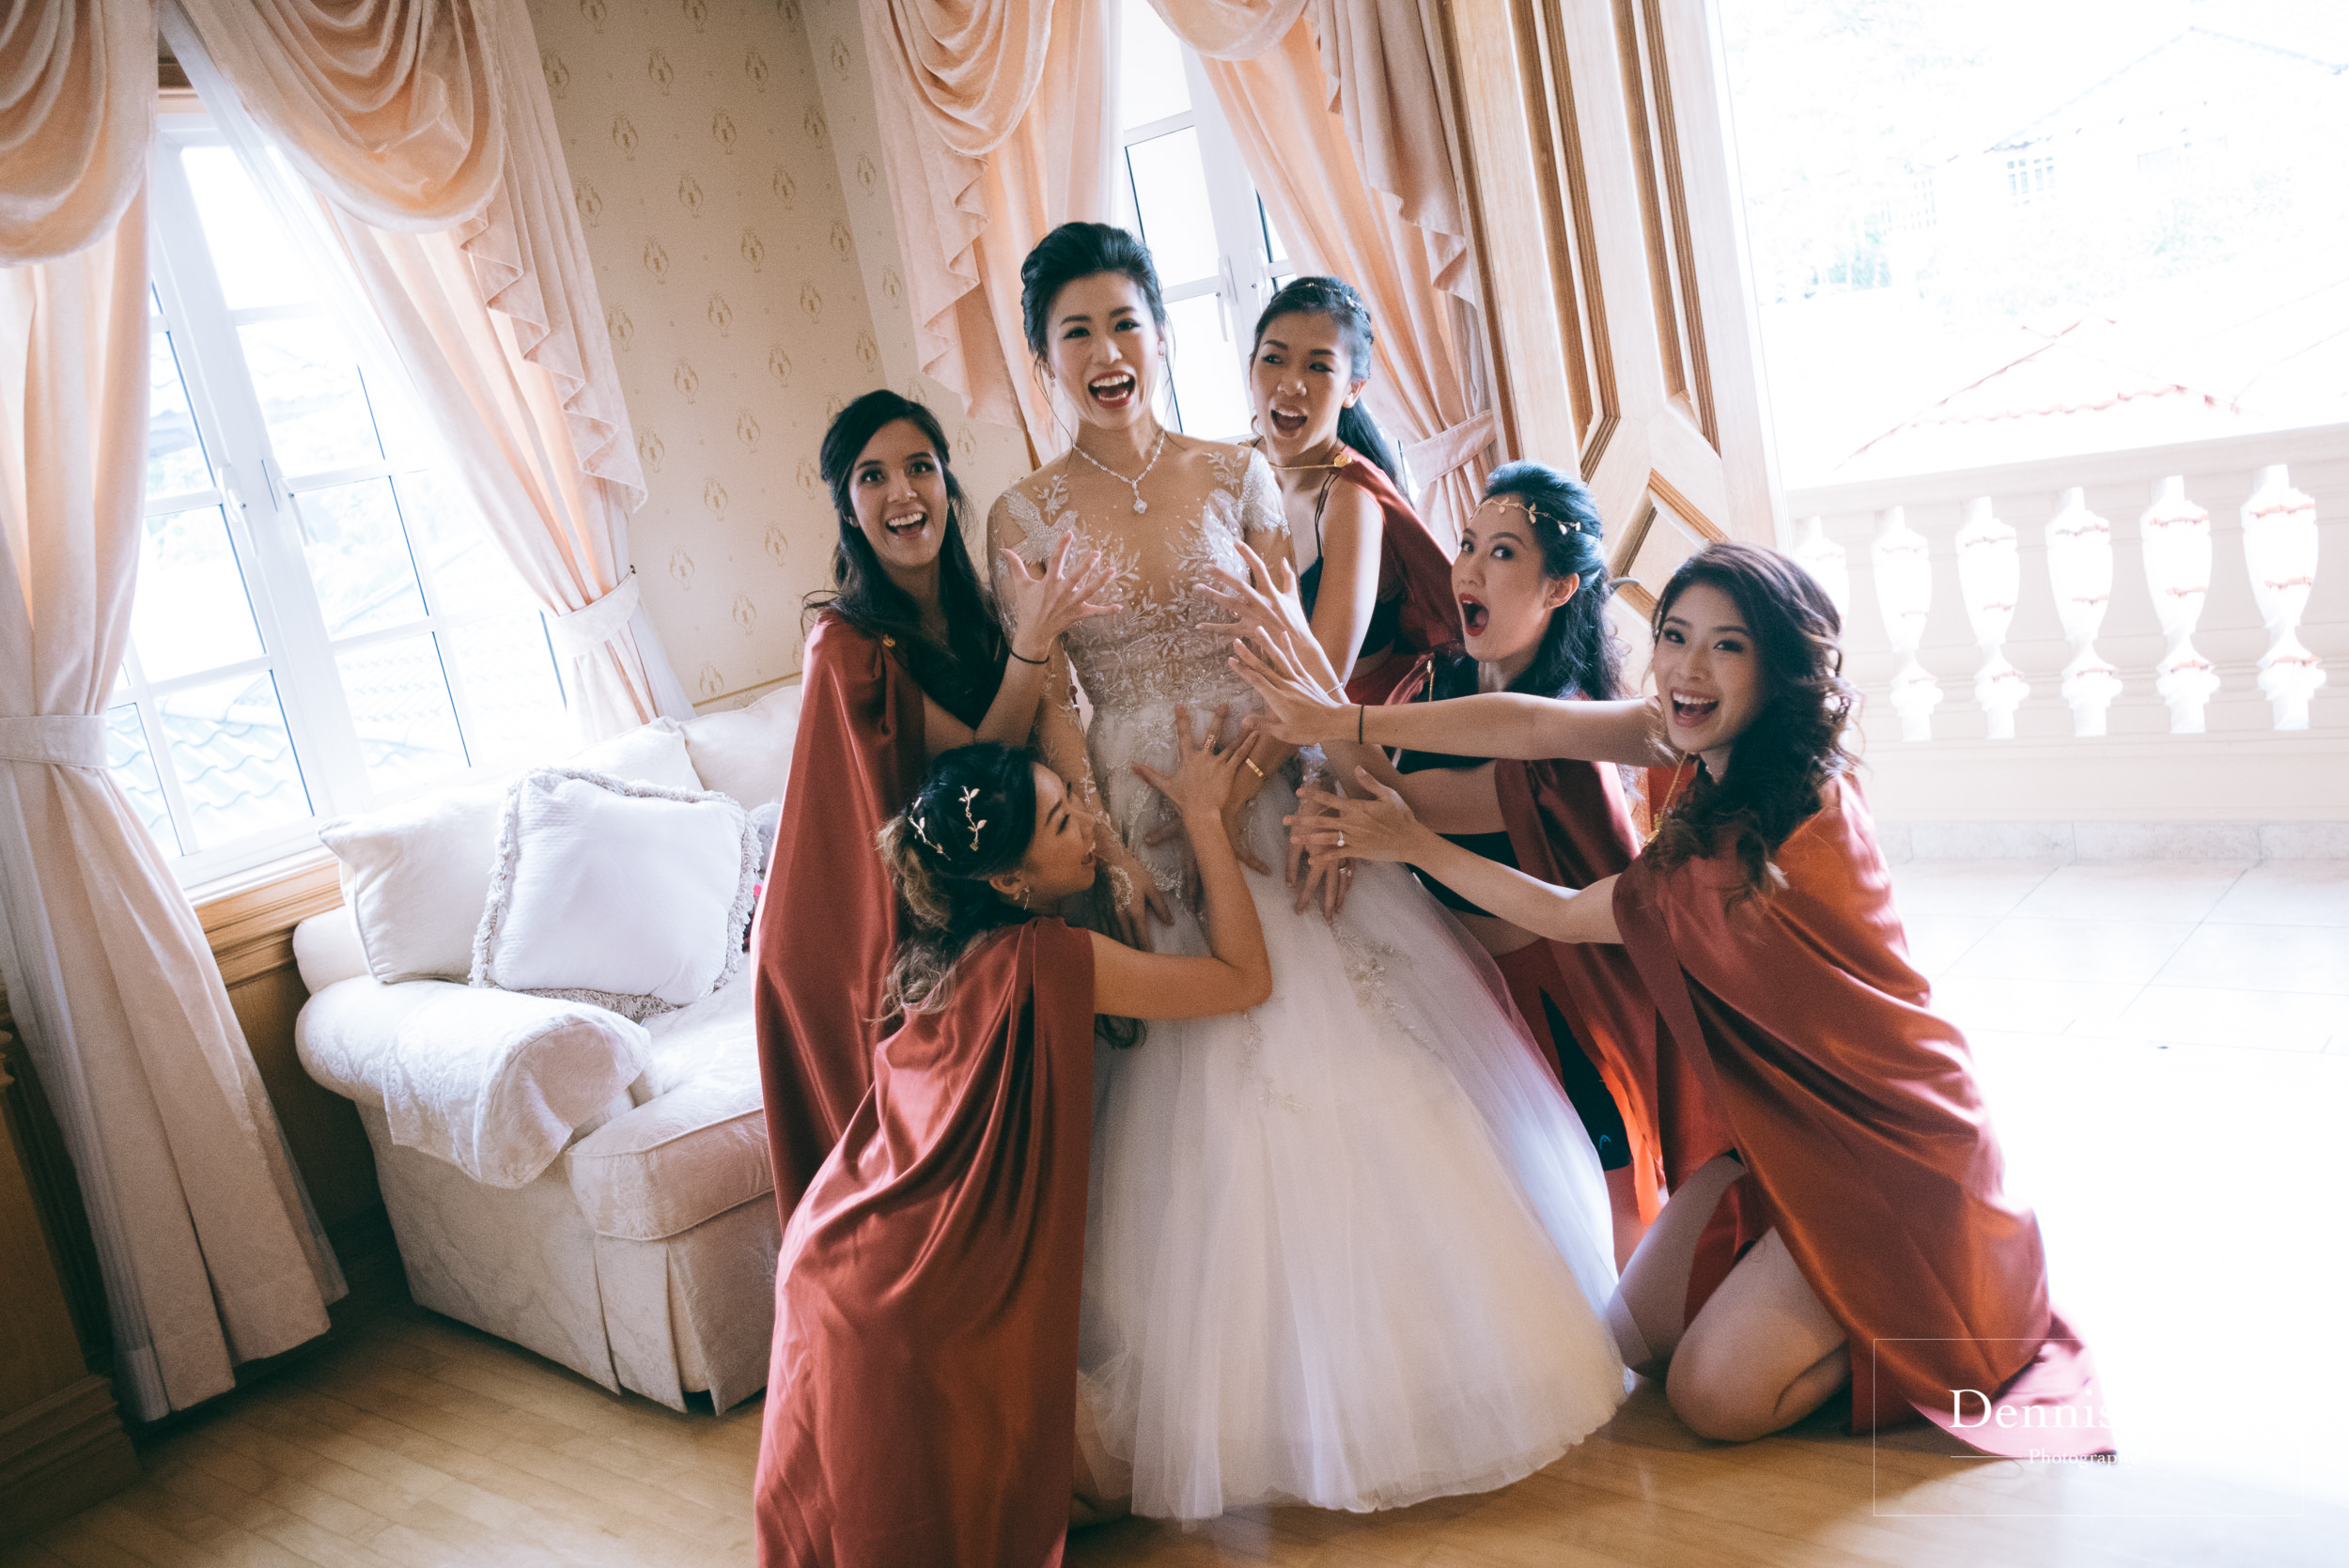 ser siang sze liang wedding day crazy style dennis yap photography malaysia wedding photographer-4.jpg